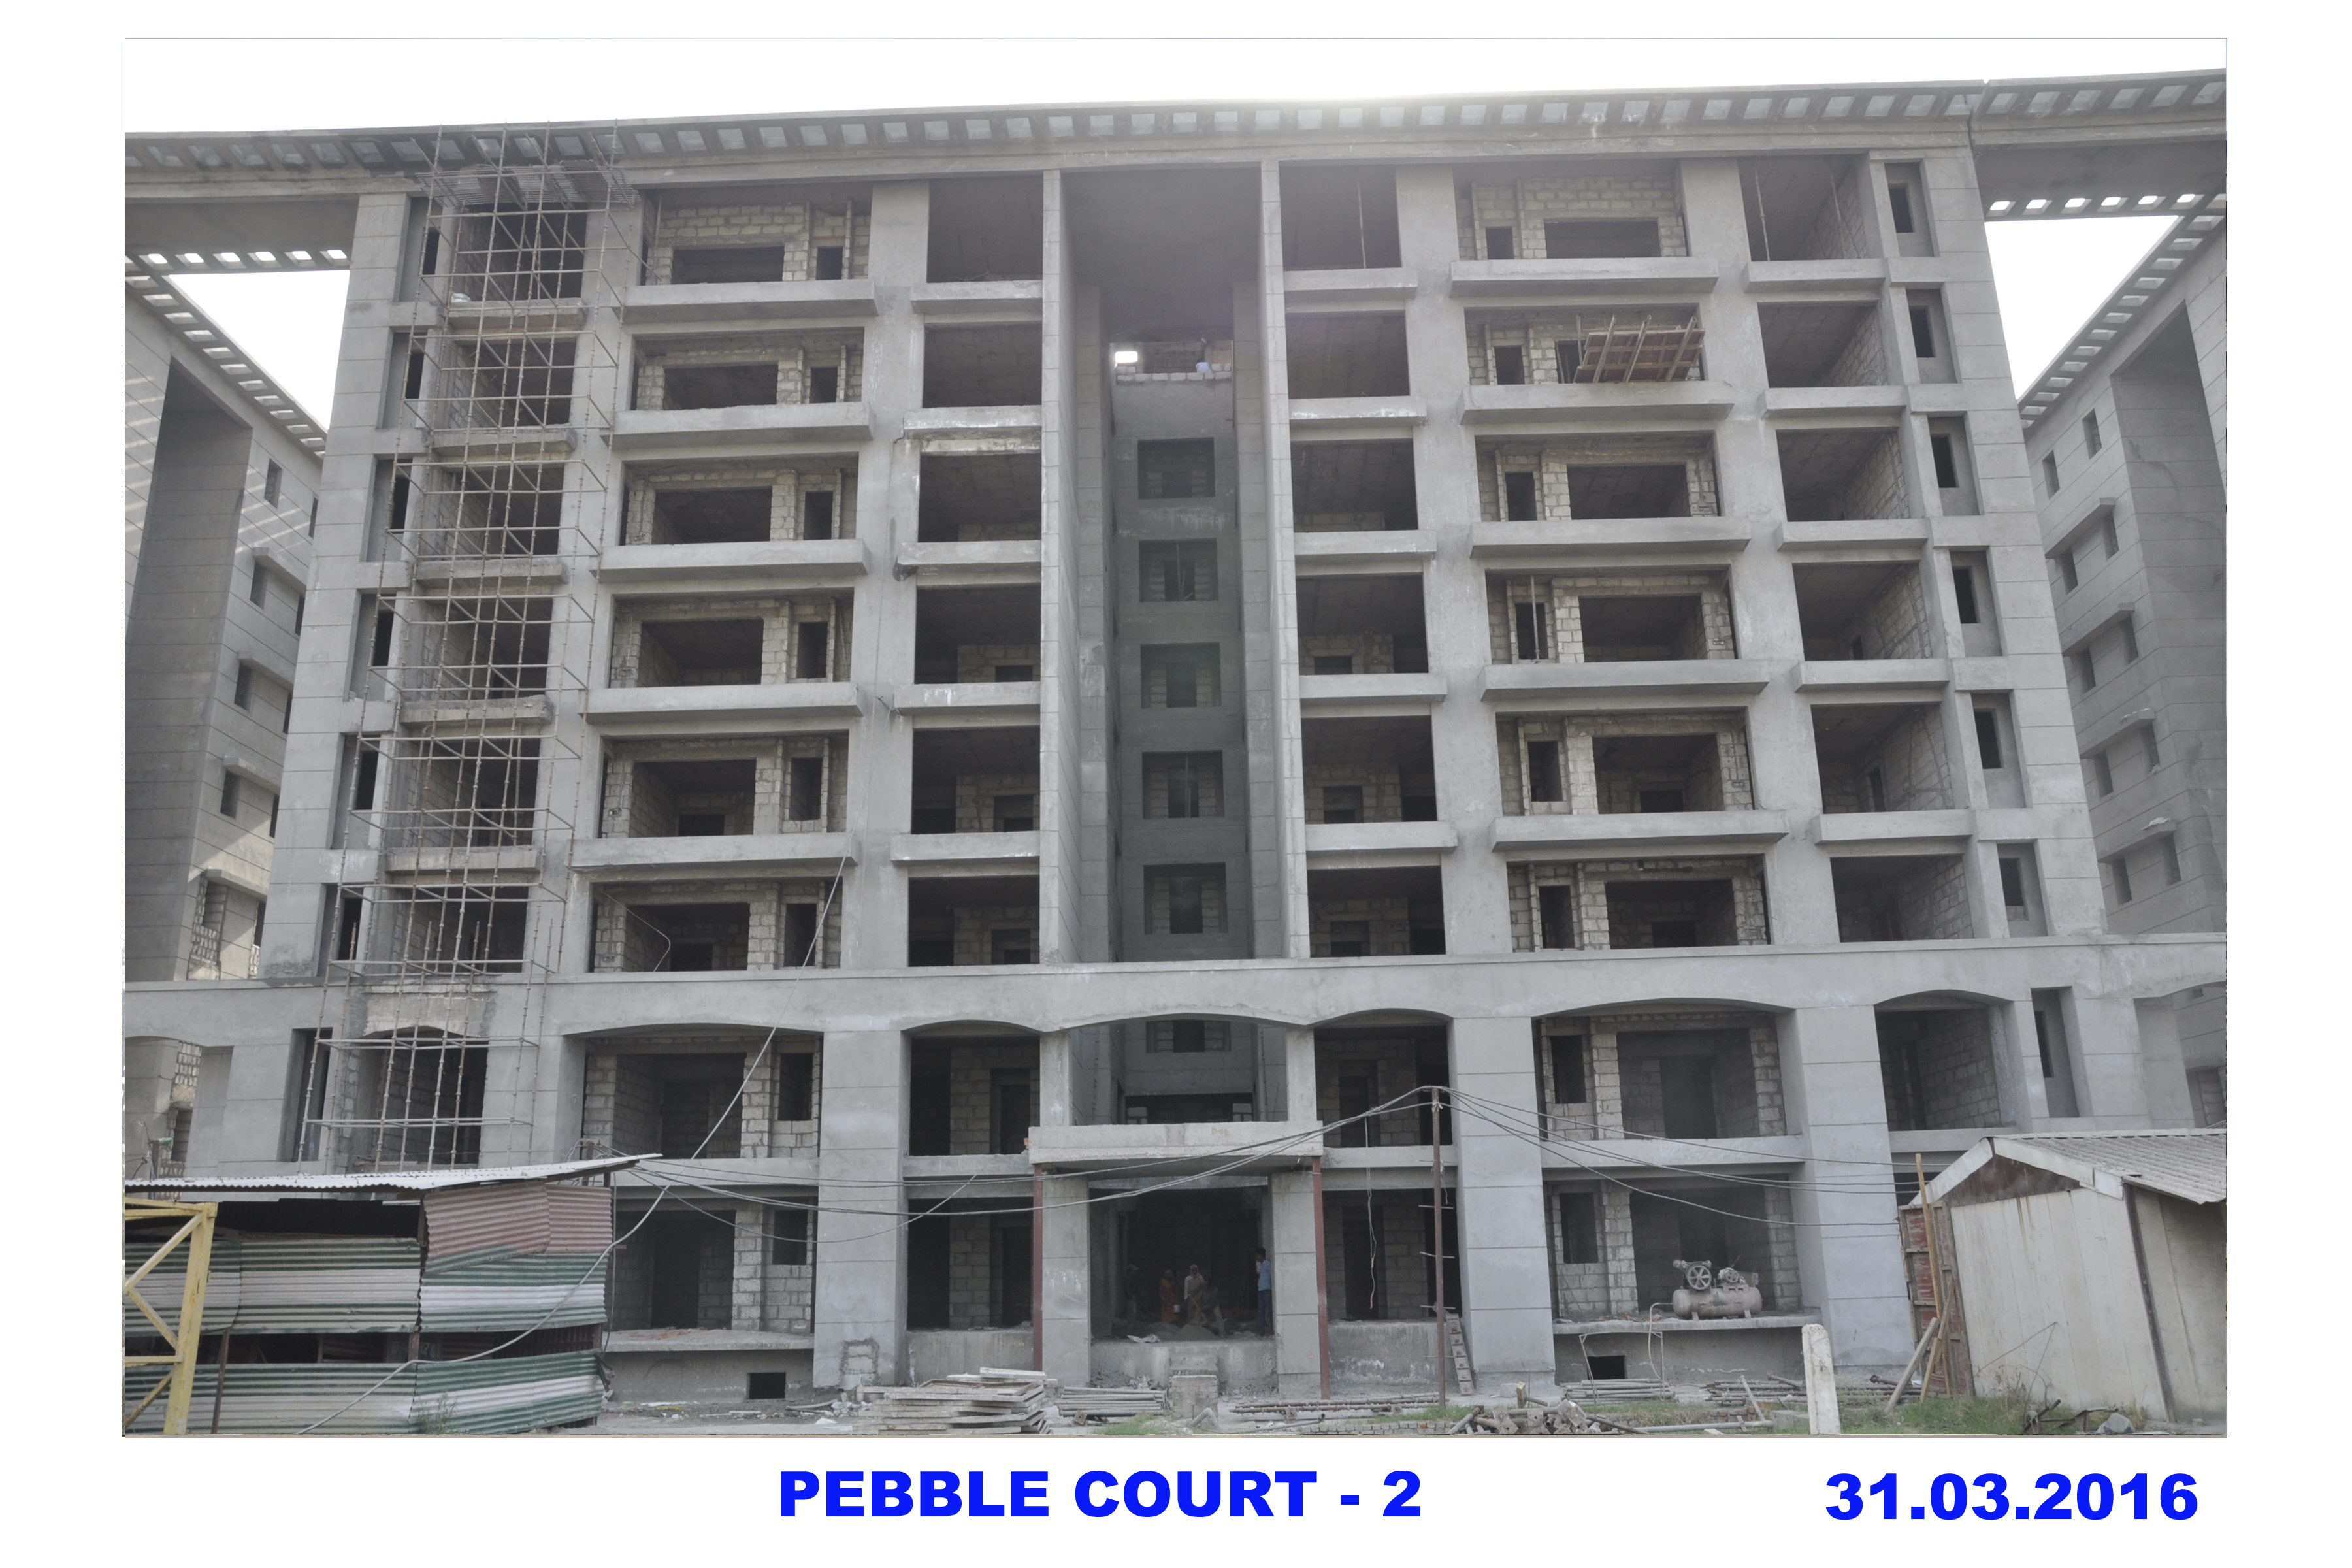 Pebble court Tower - 2